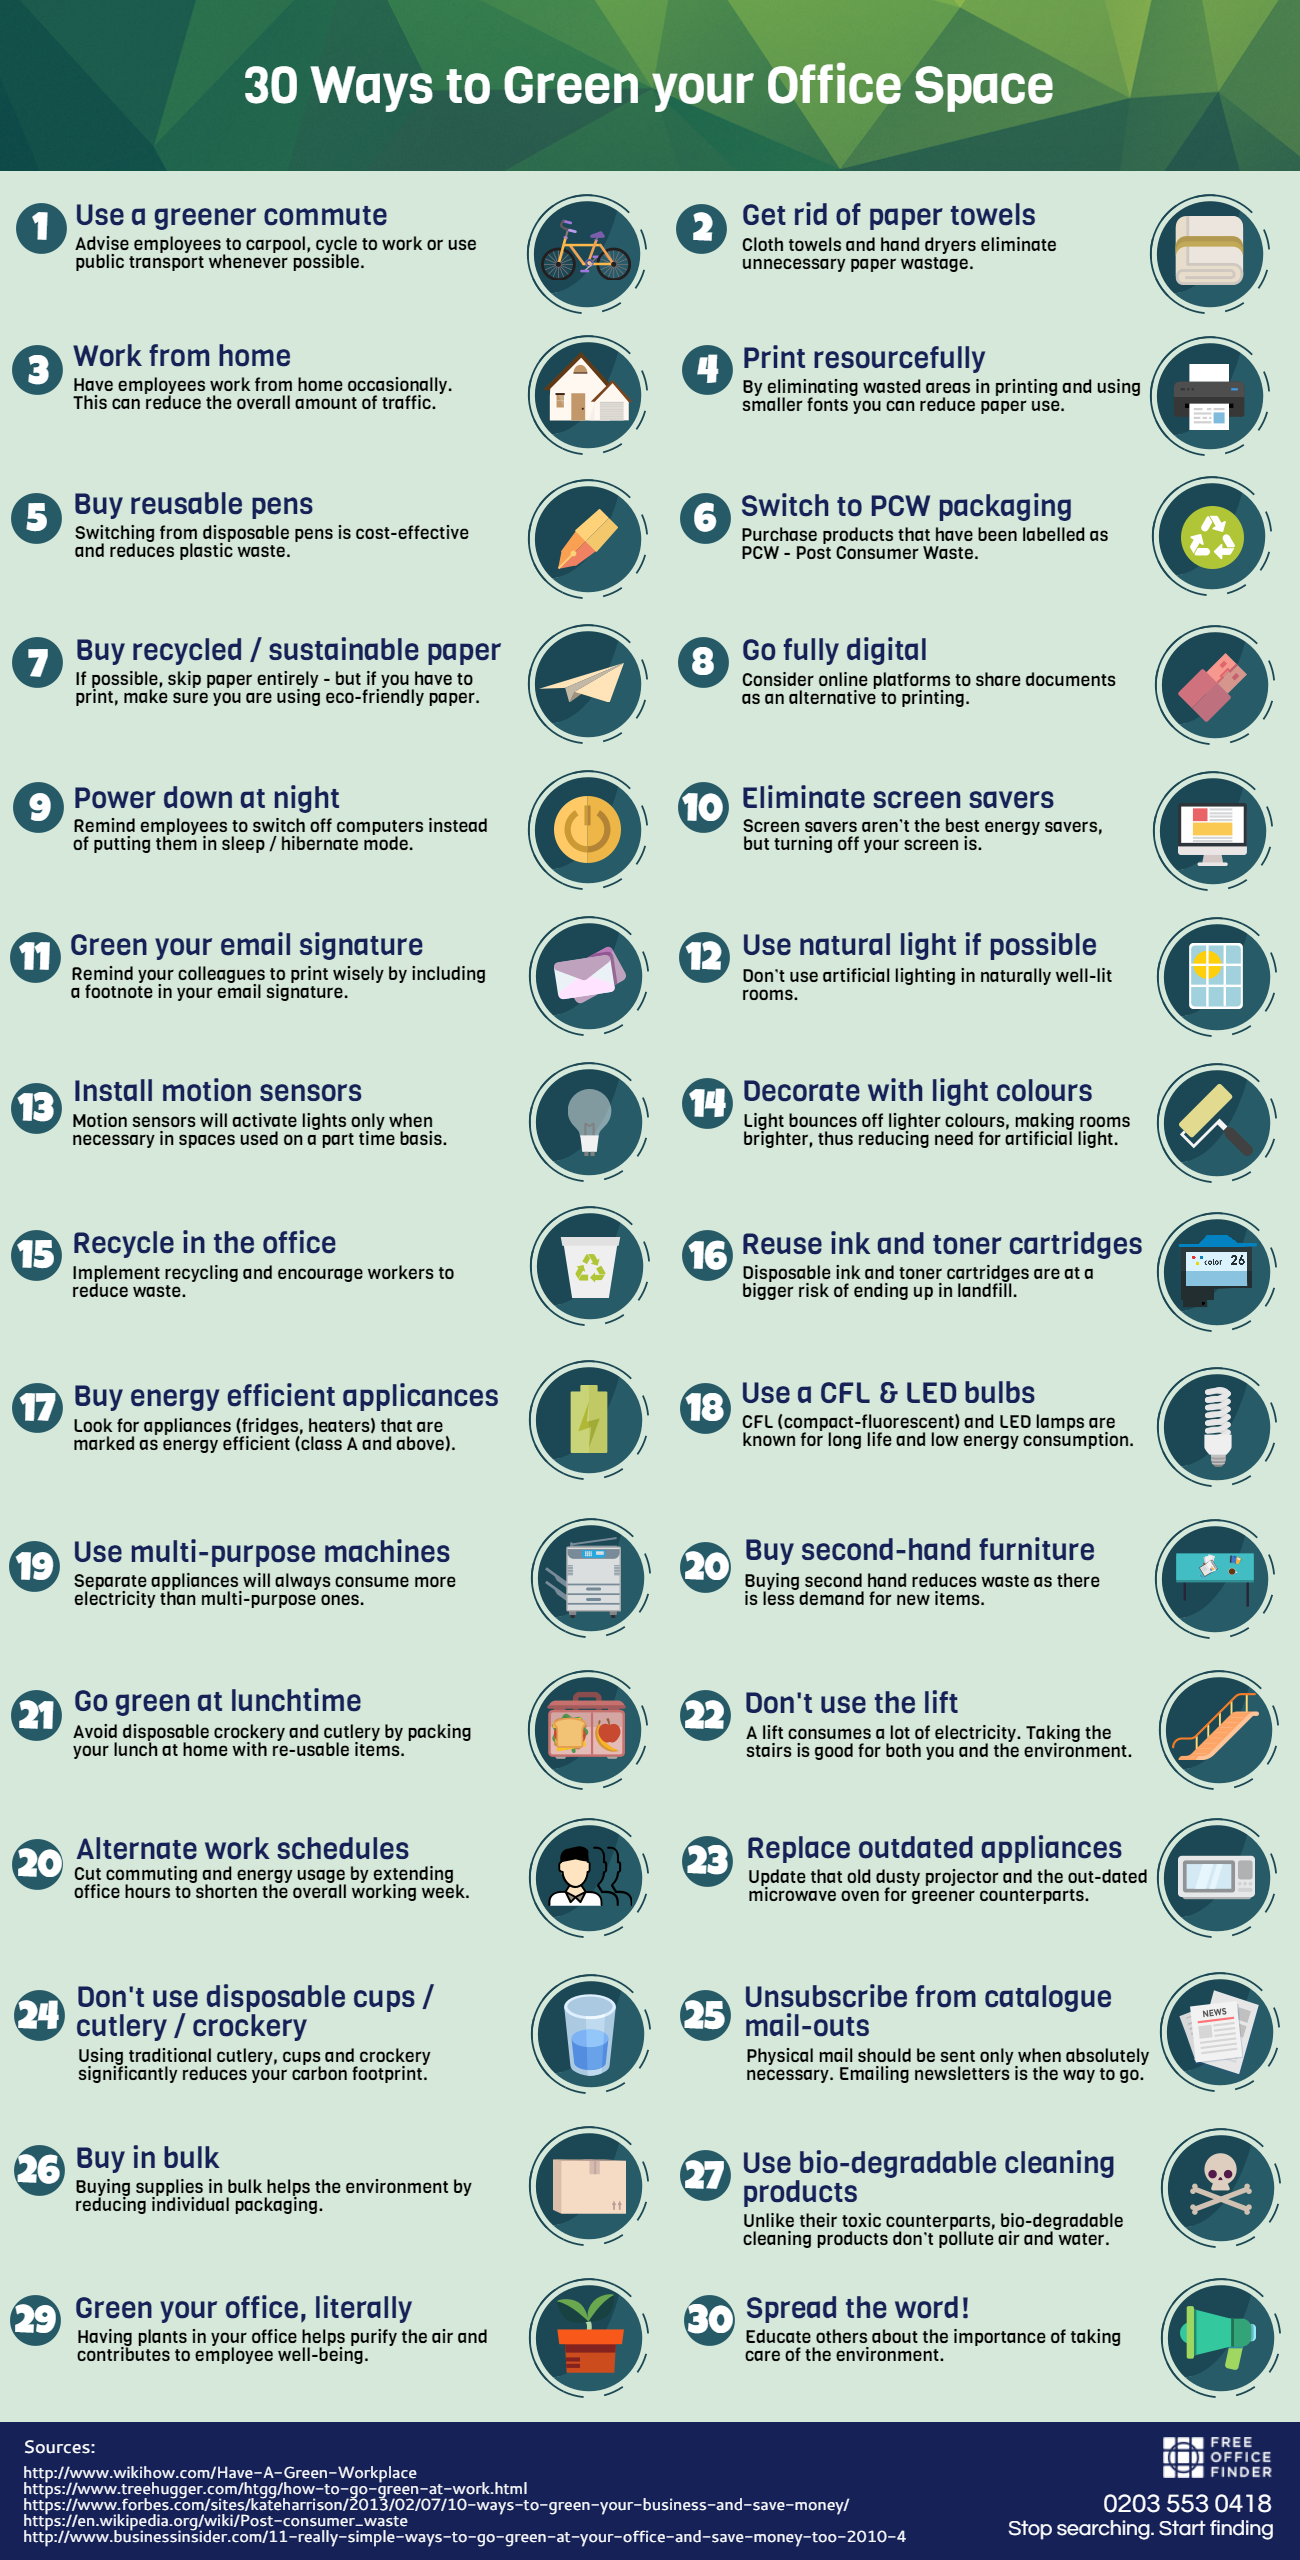 30 Ways to Green Your Office Space